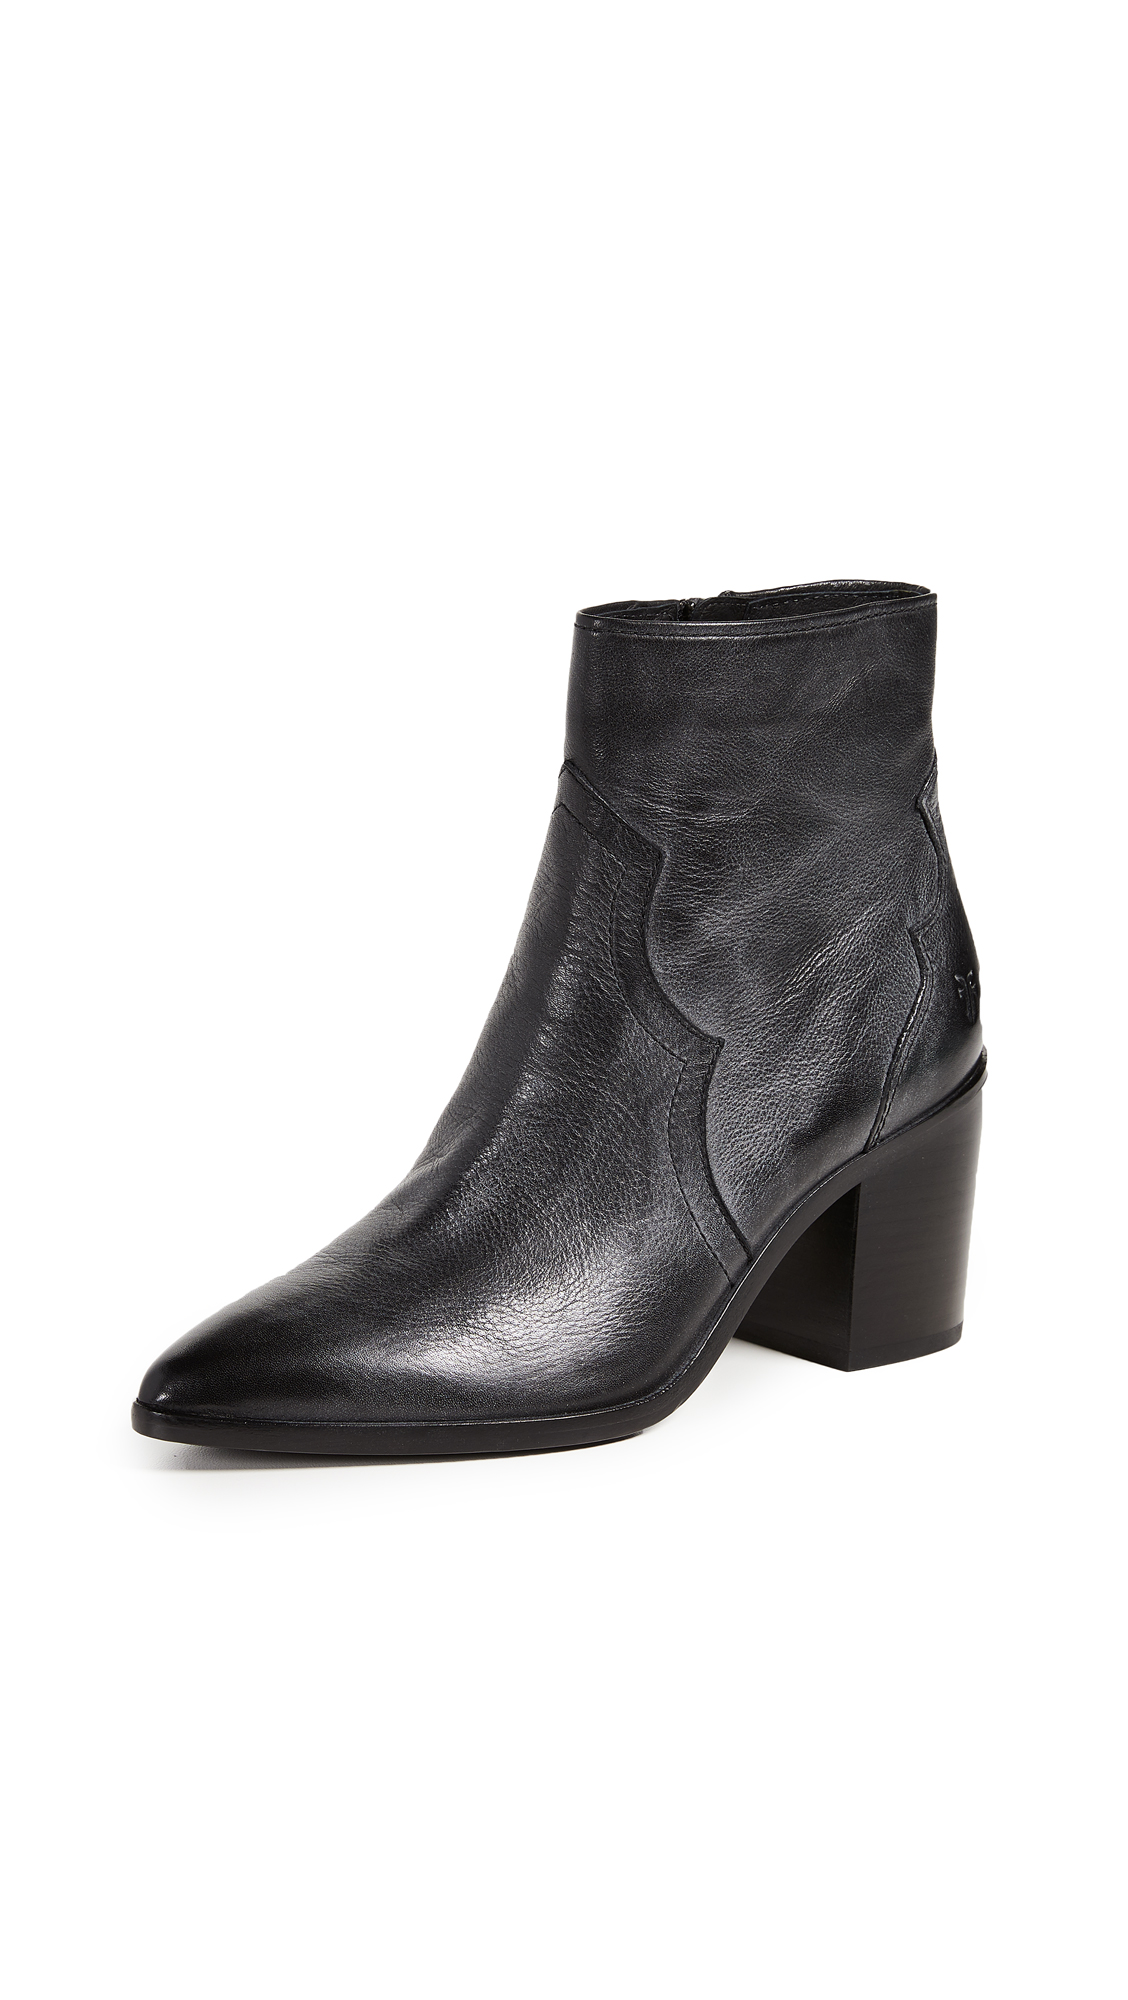 Frye Flynn Inside Zip Boots - Black